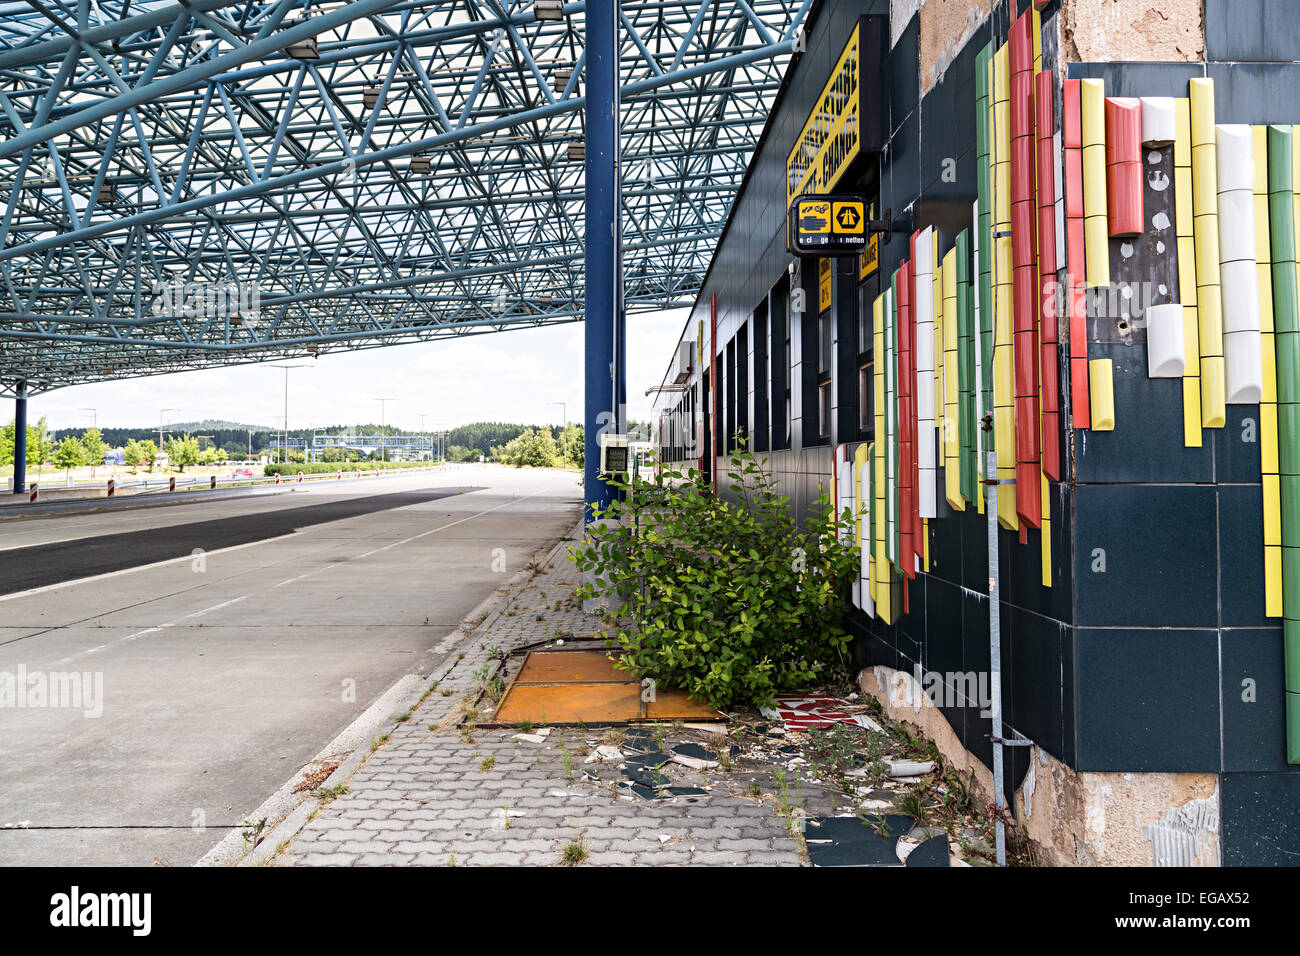 The old border crossing point at Waidhaus from Germany to Czech Republic, now run down derelict and unused - Stock Image